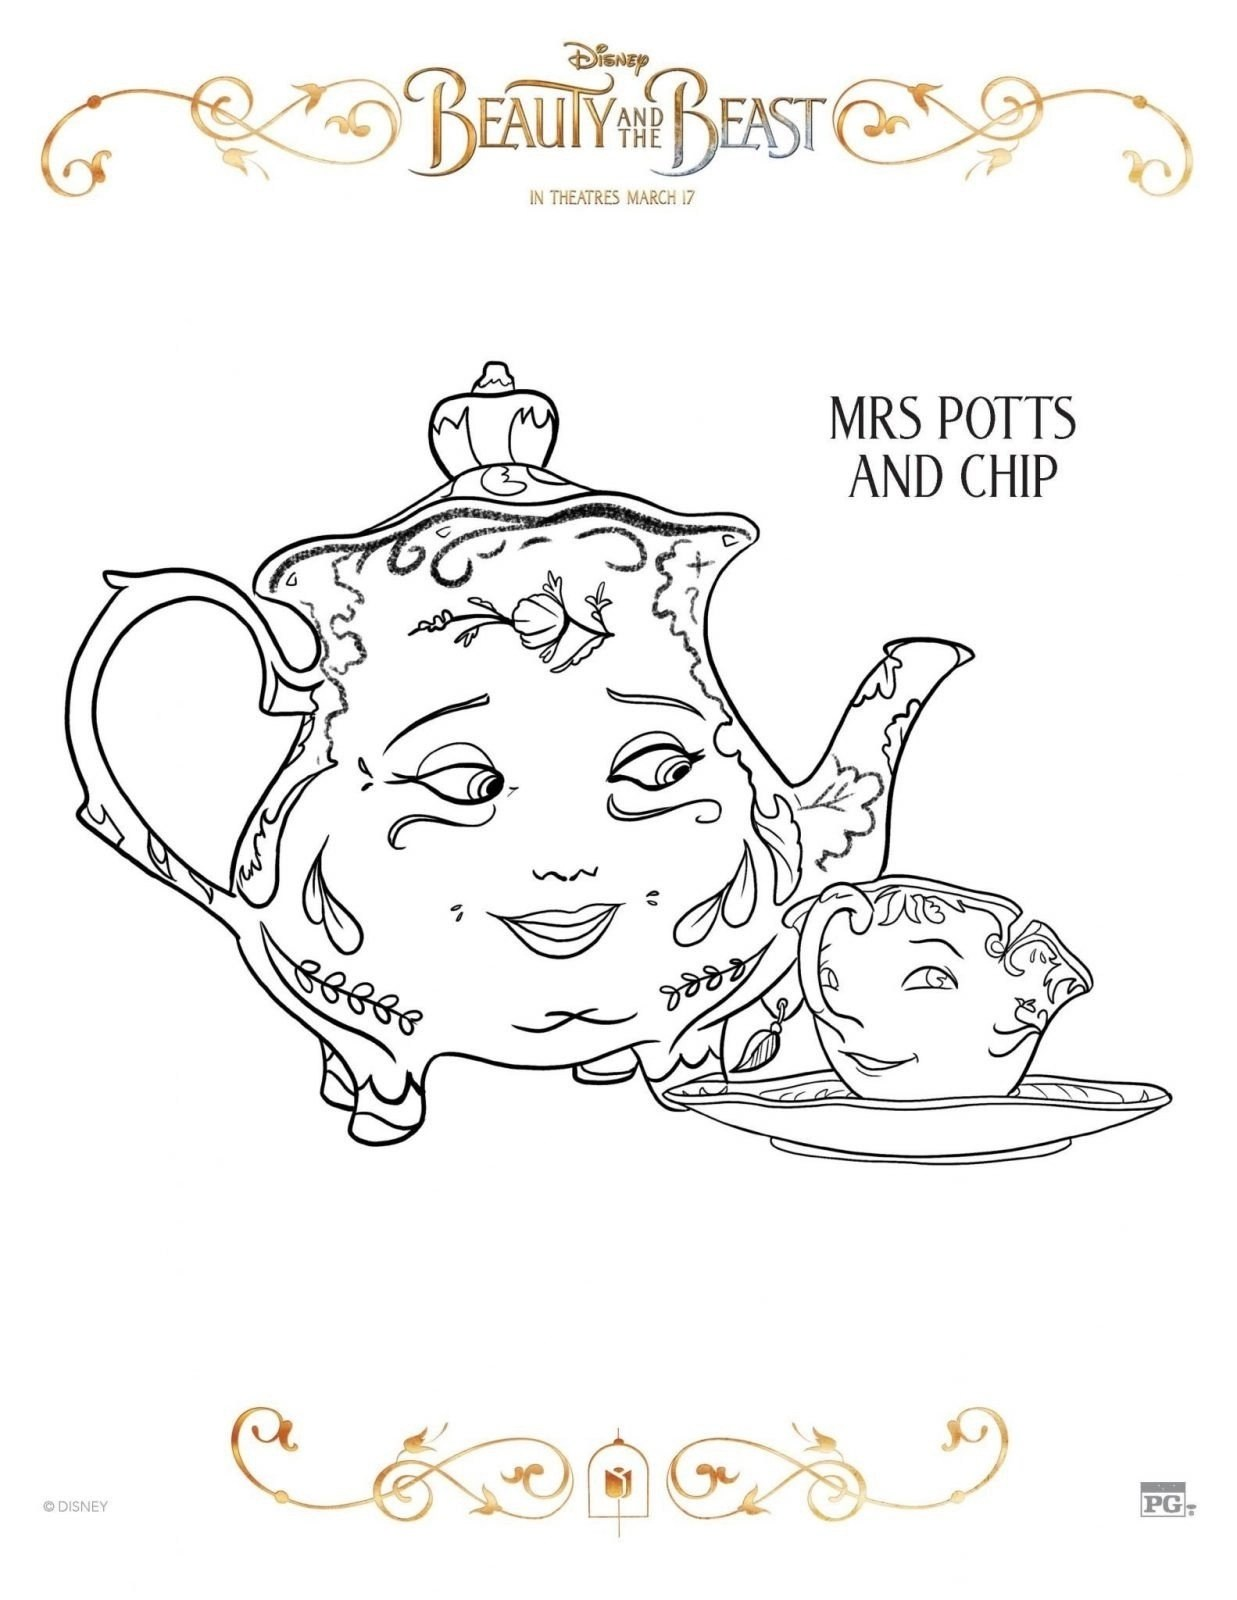 Mrs Potts and Chip Beauty and Beast Coloring Sheet